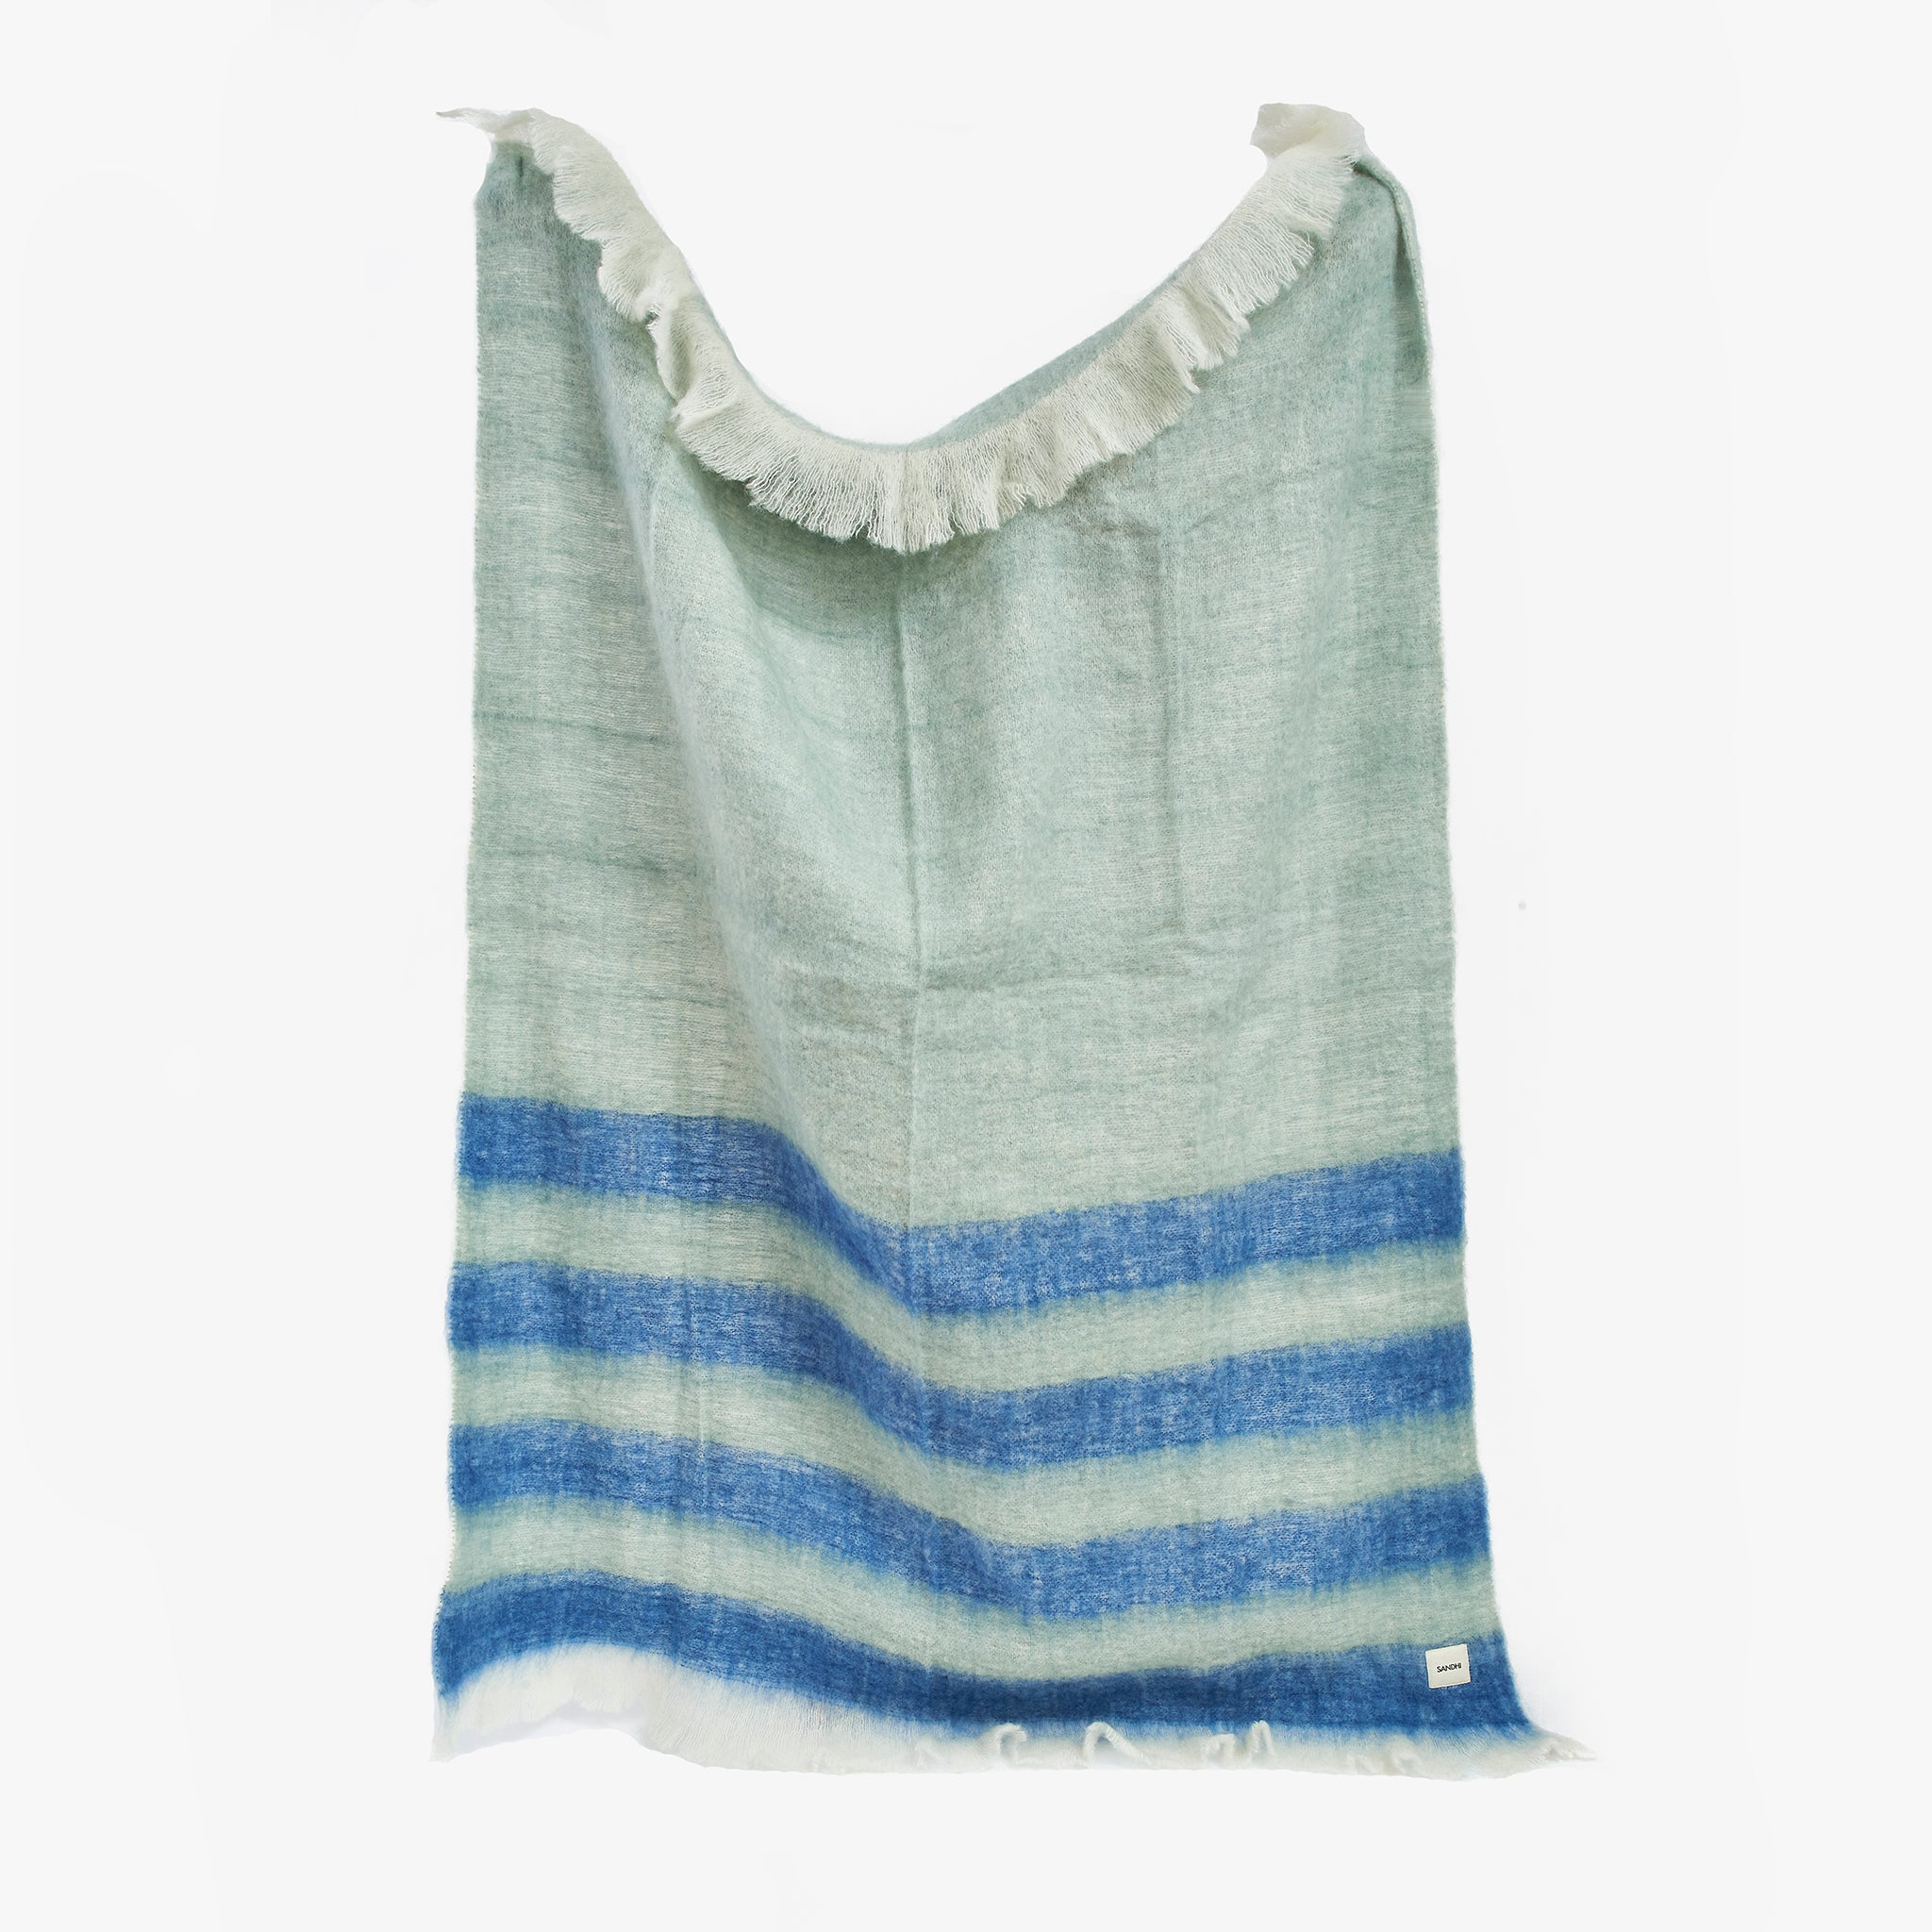 Blue & Green Wool Blanket stripped Throw | Sandhi